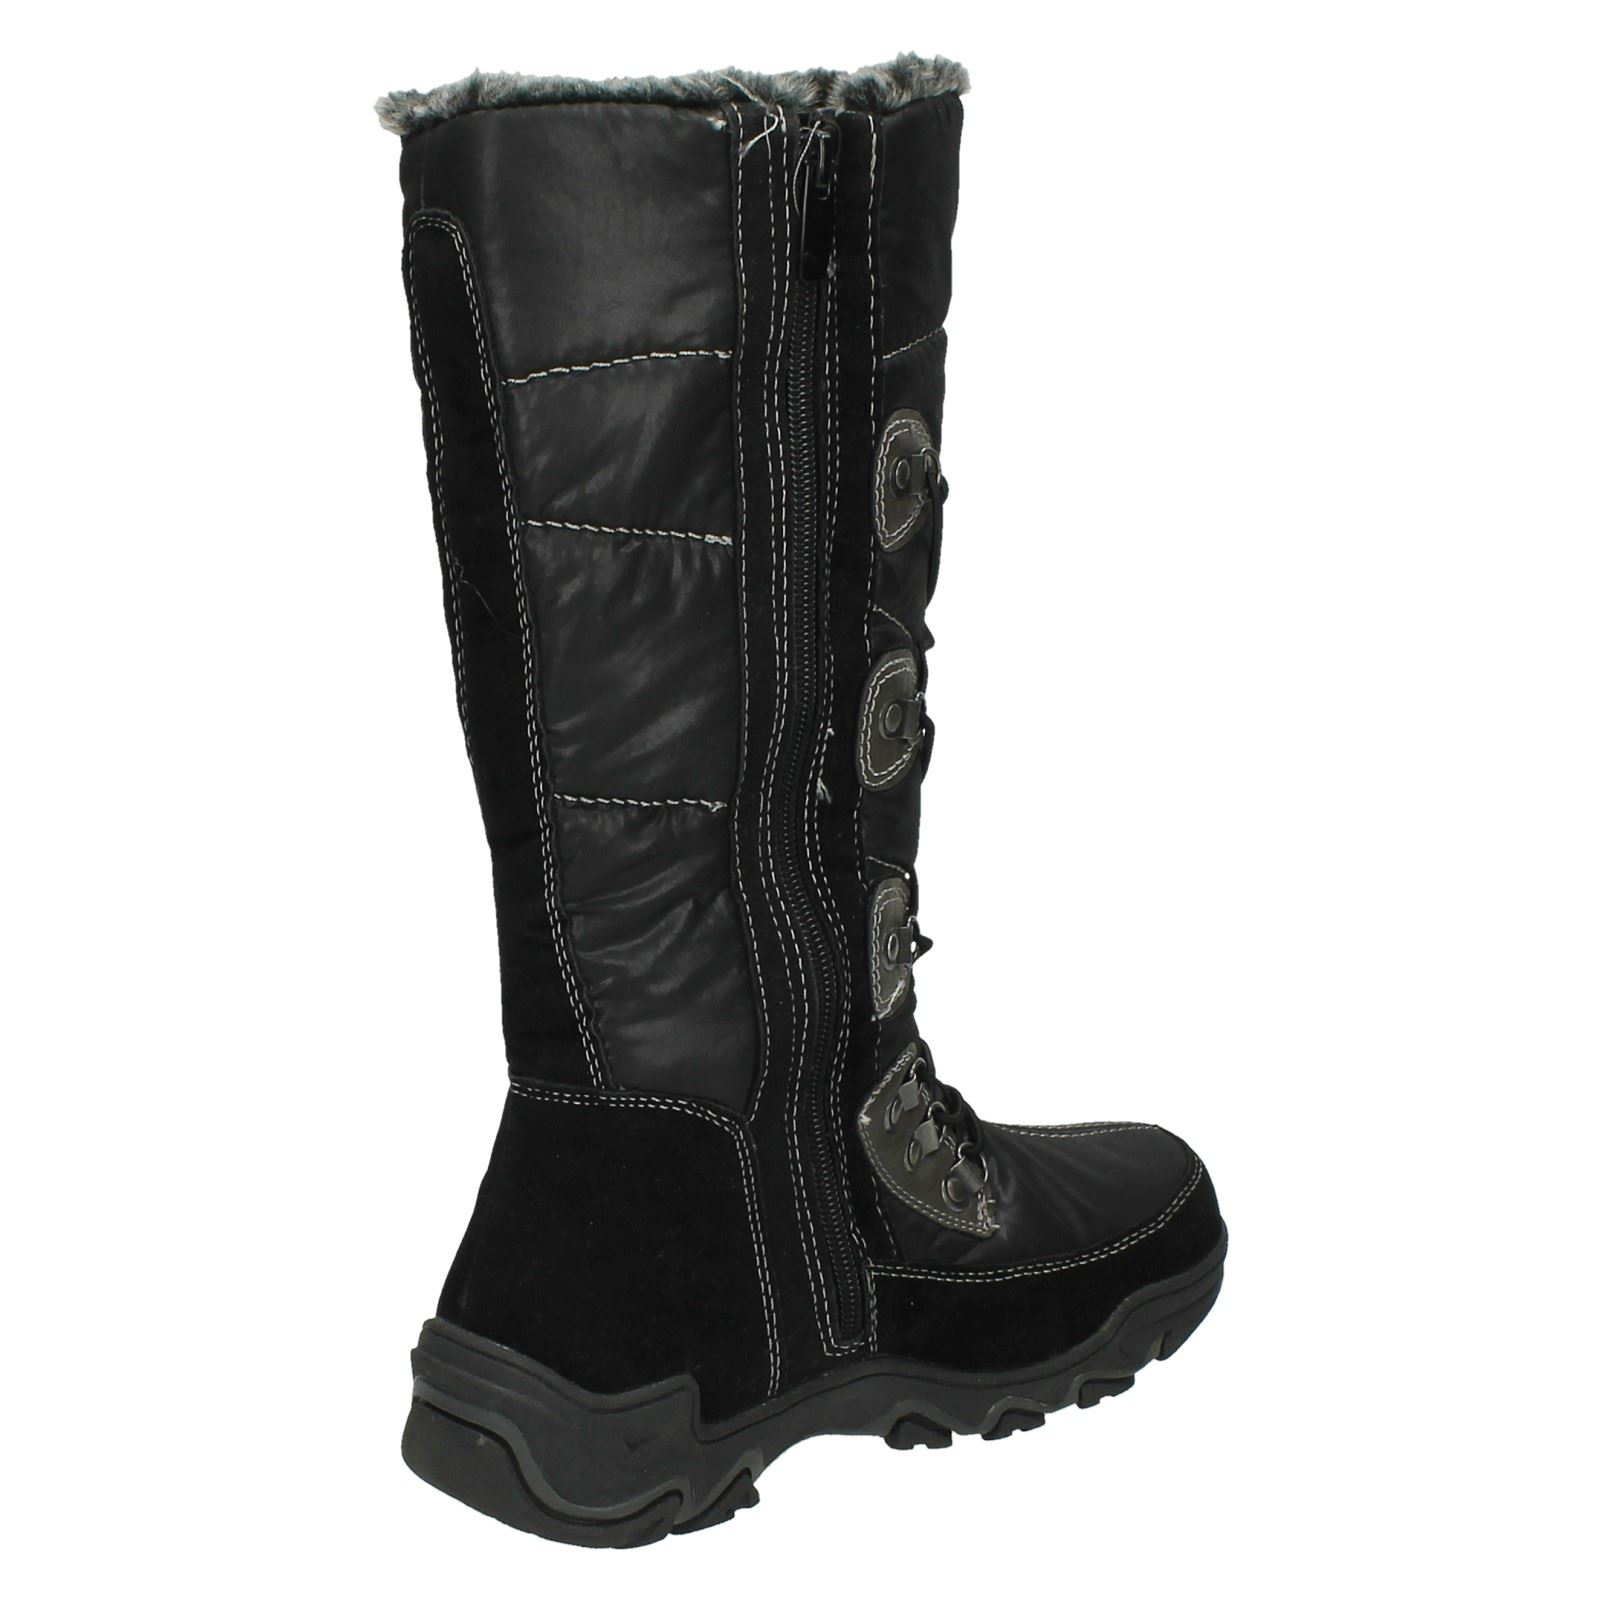 Childrens Icetex Knee High Snow Boots